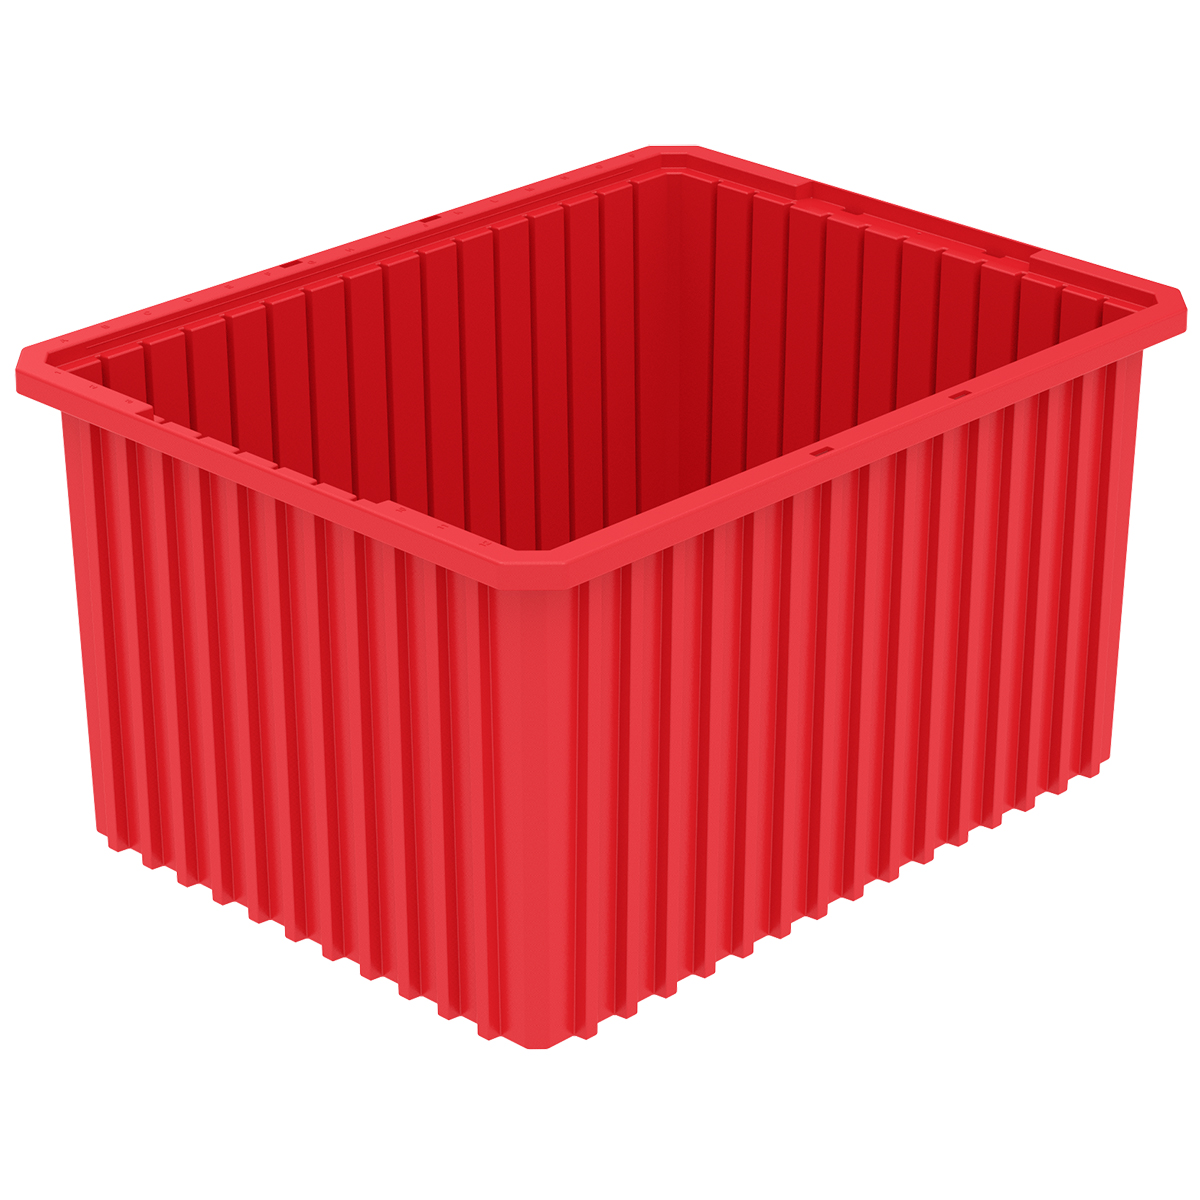 Akro-Grid Dividable Box 22-1/2 x 17-1/2 x 12, Red.  This item sold in carton quantities of 3.